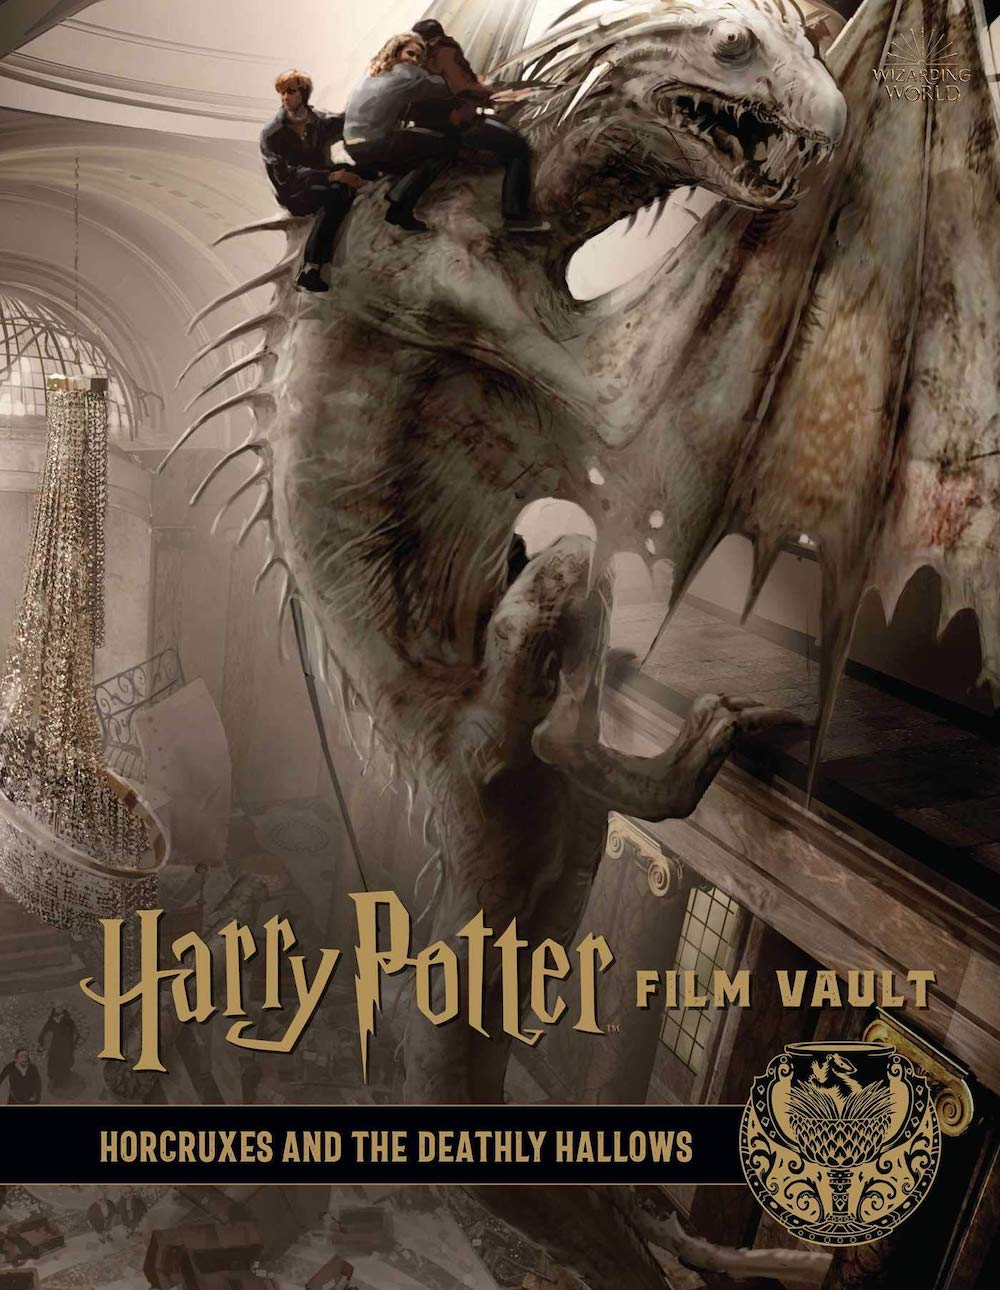 The third book in the collection shines a light on the darker elements of magic, Hocruxes and Deathly Hallows.